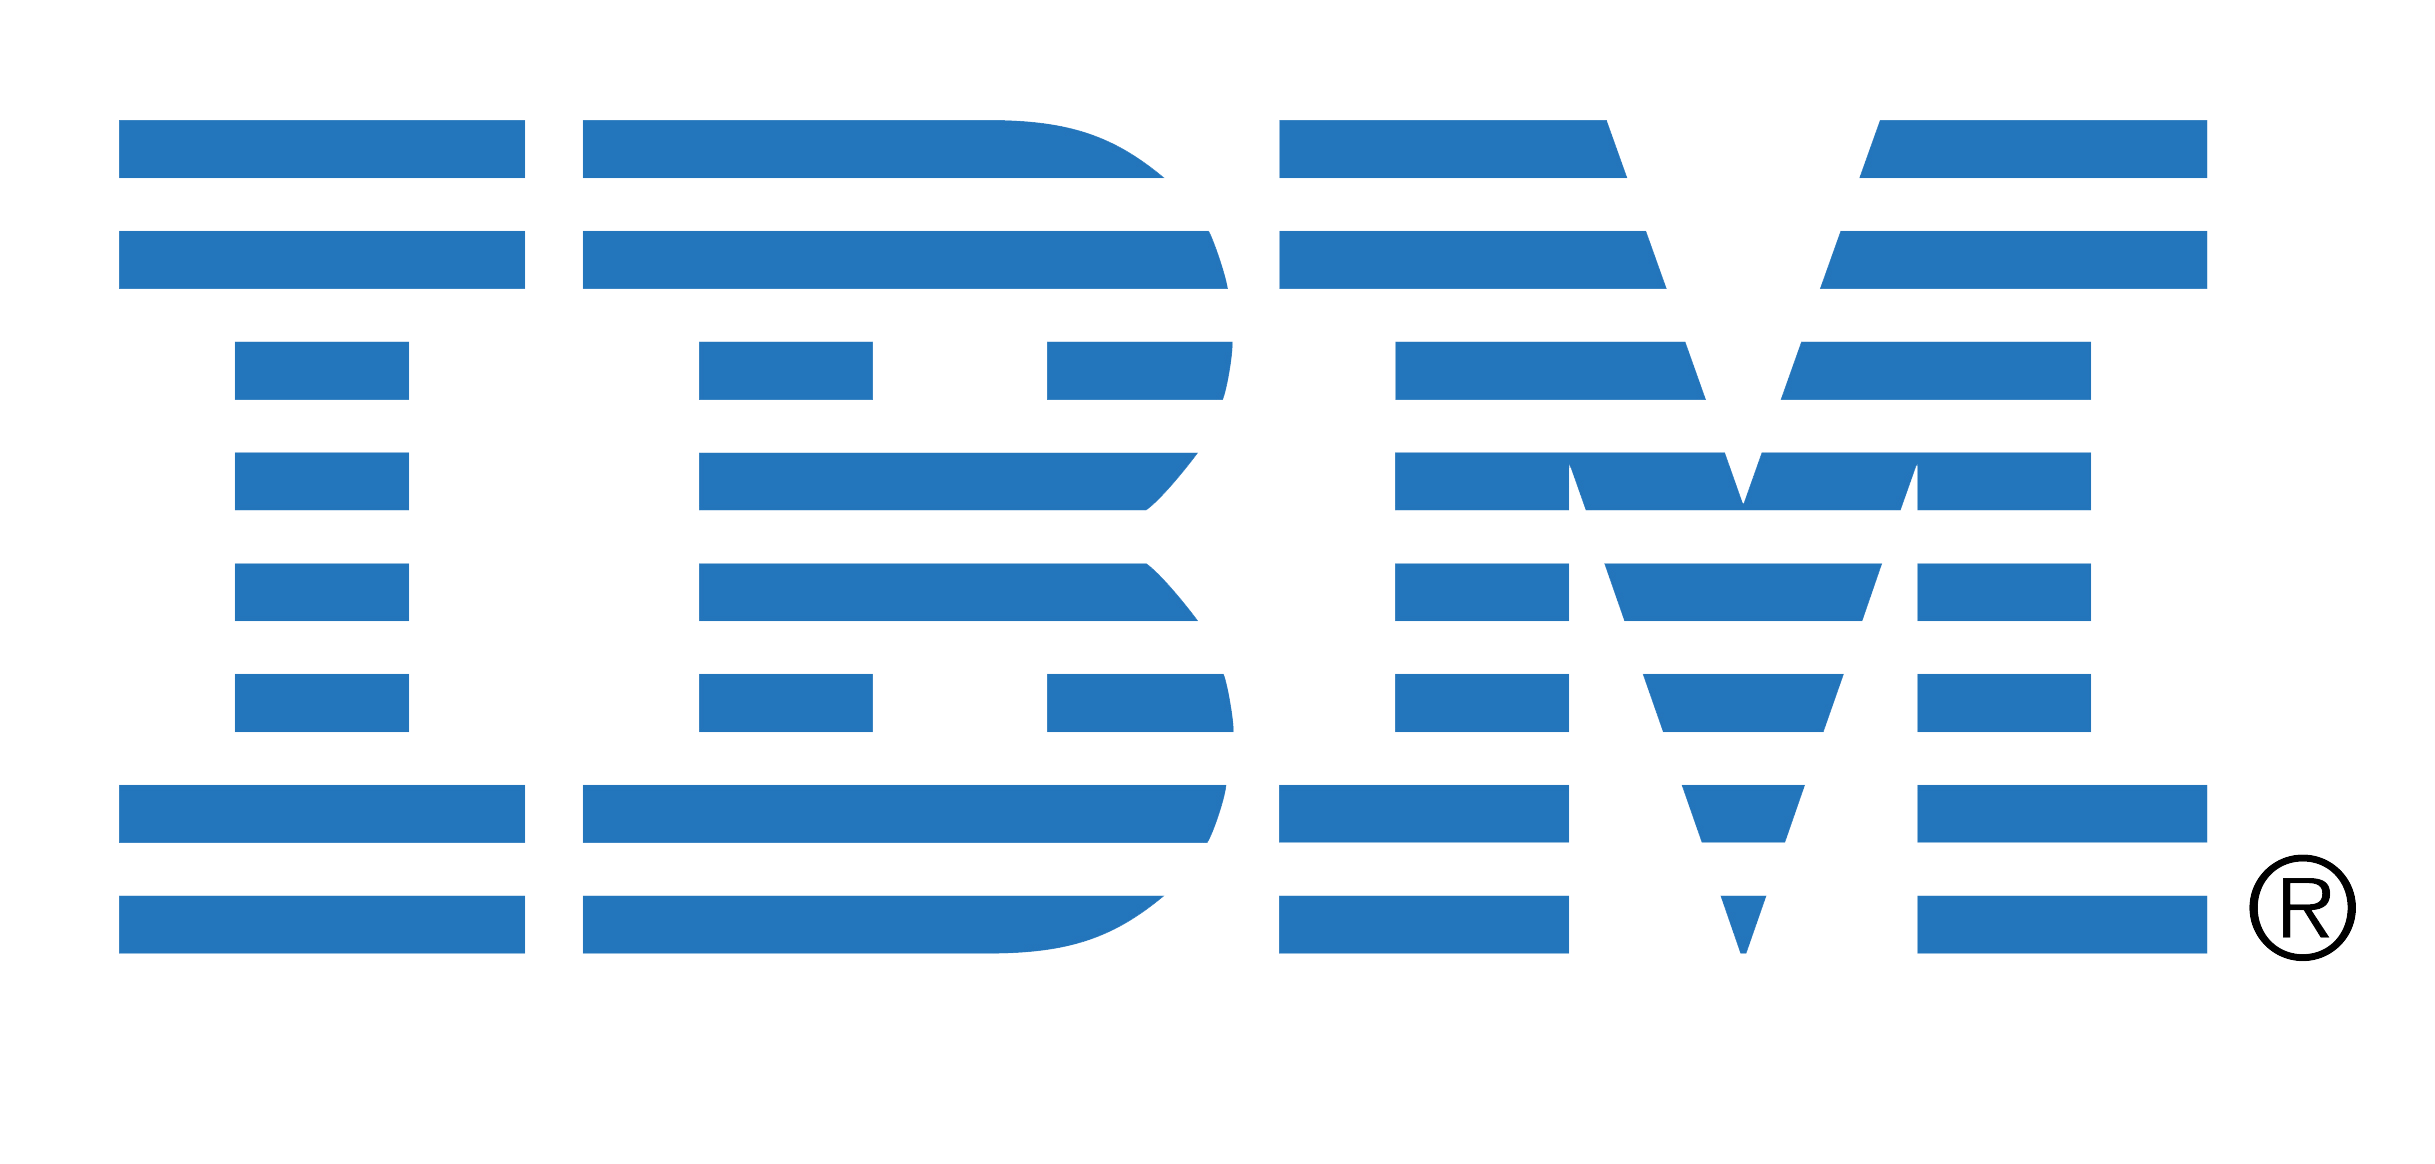 ibm logo, cru repair louis #18916